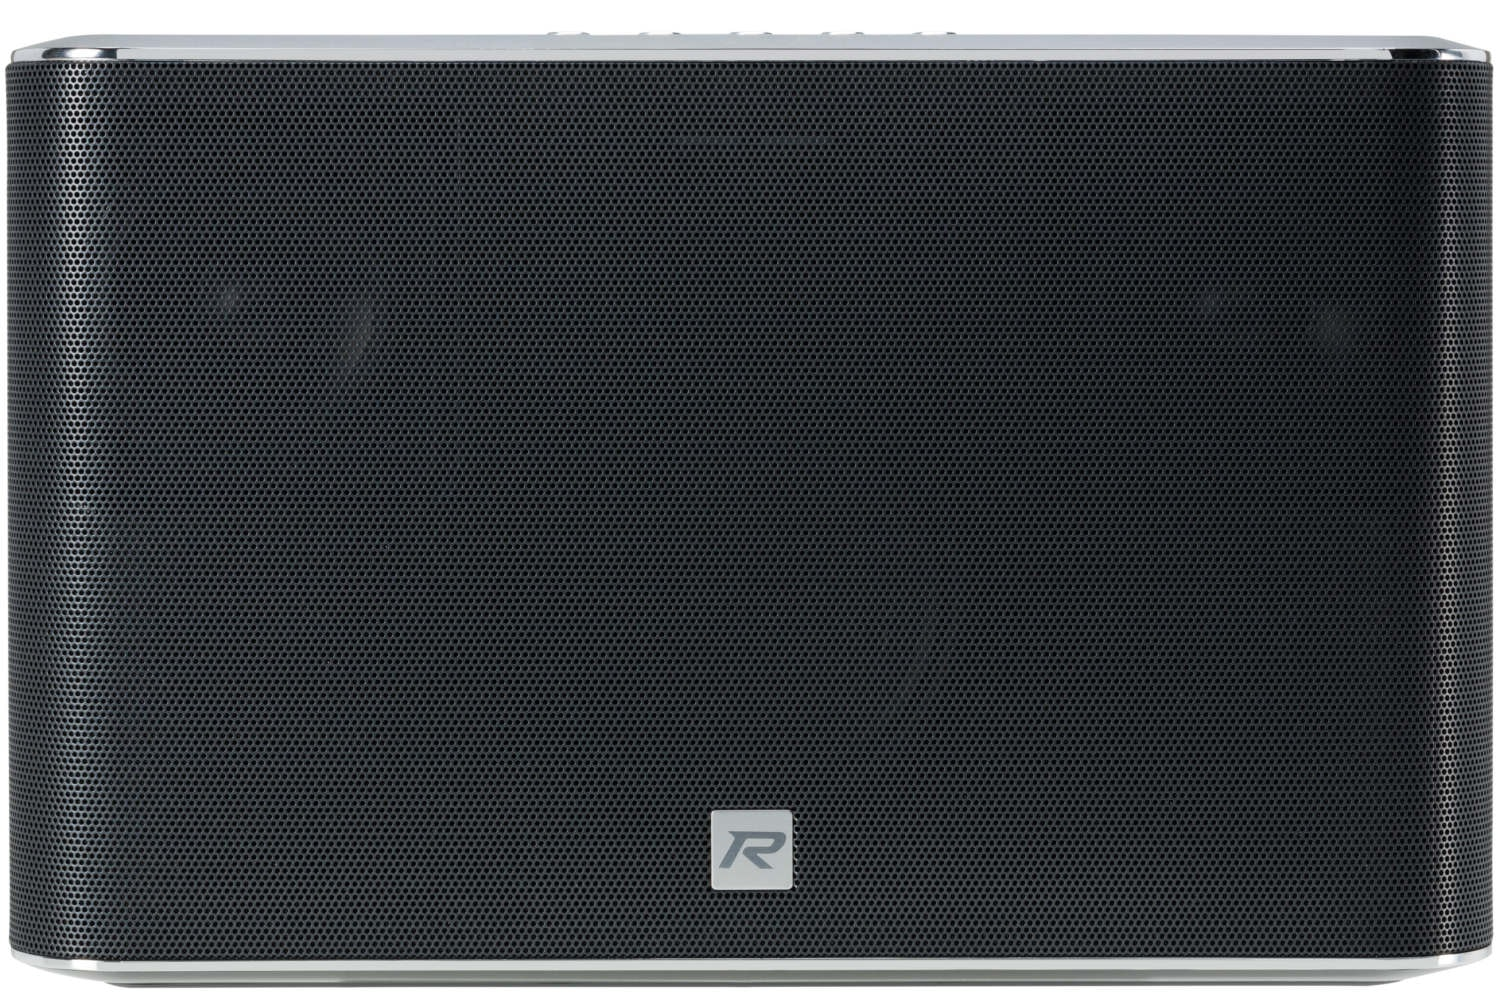 Roberts S2 Wireless Stereo Speaker